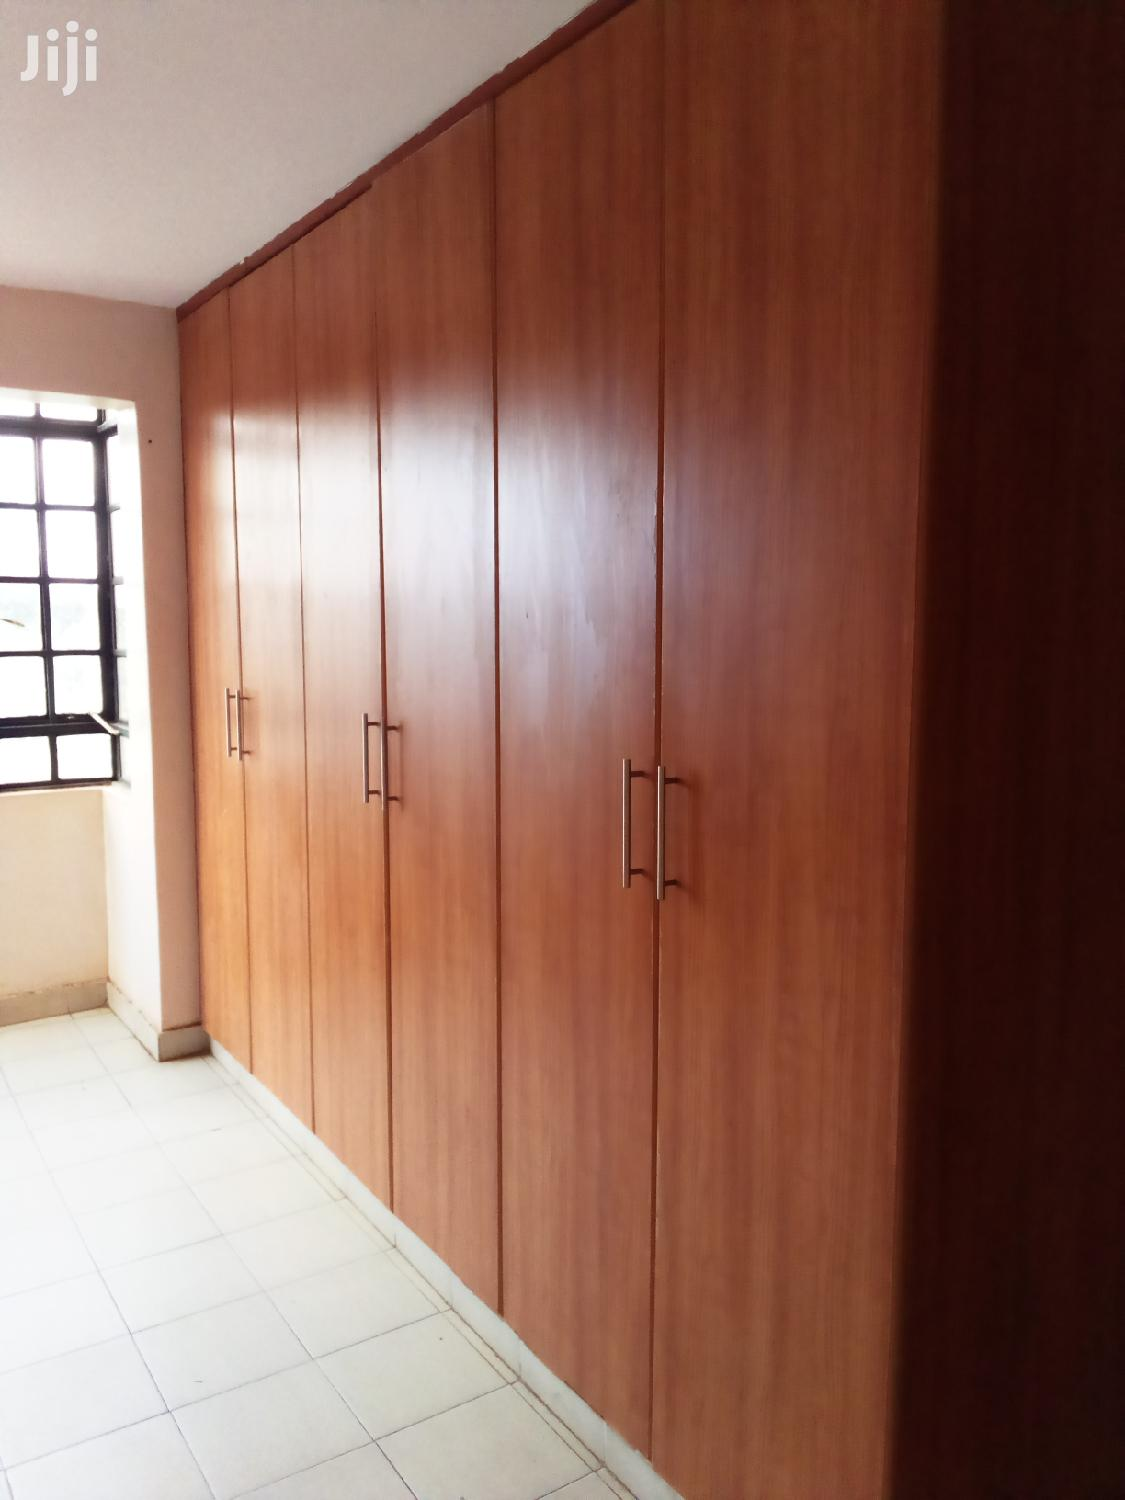 2 Bedroom,Master Ensuite Apartments Jacaranda Kamiti Road | Houses & Apartments For Rent for sale in Kahawa West, Nairobi, Kenya